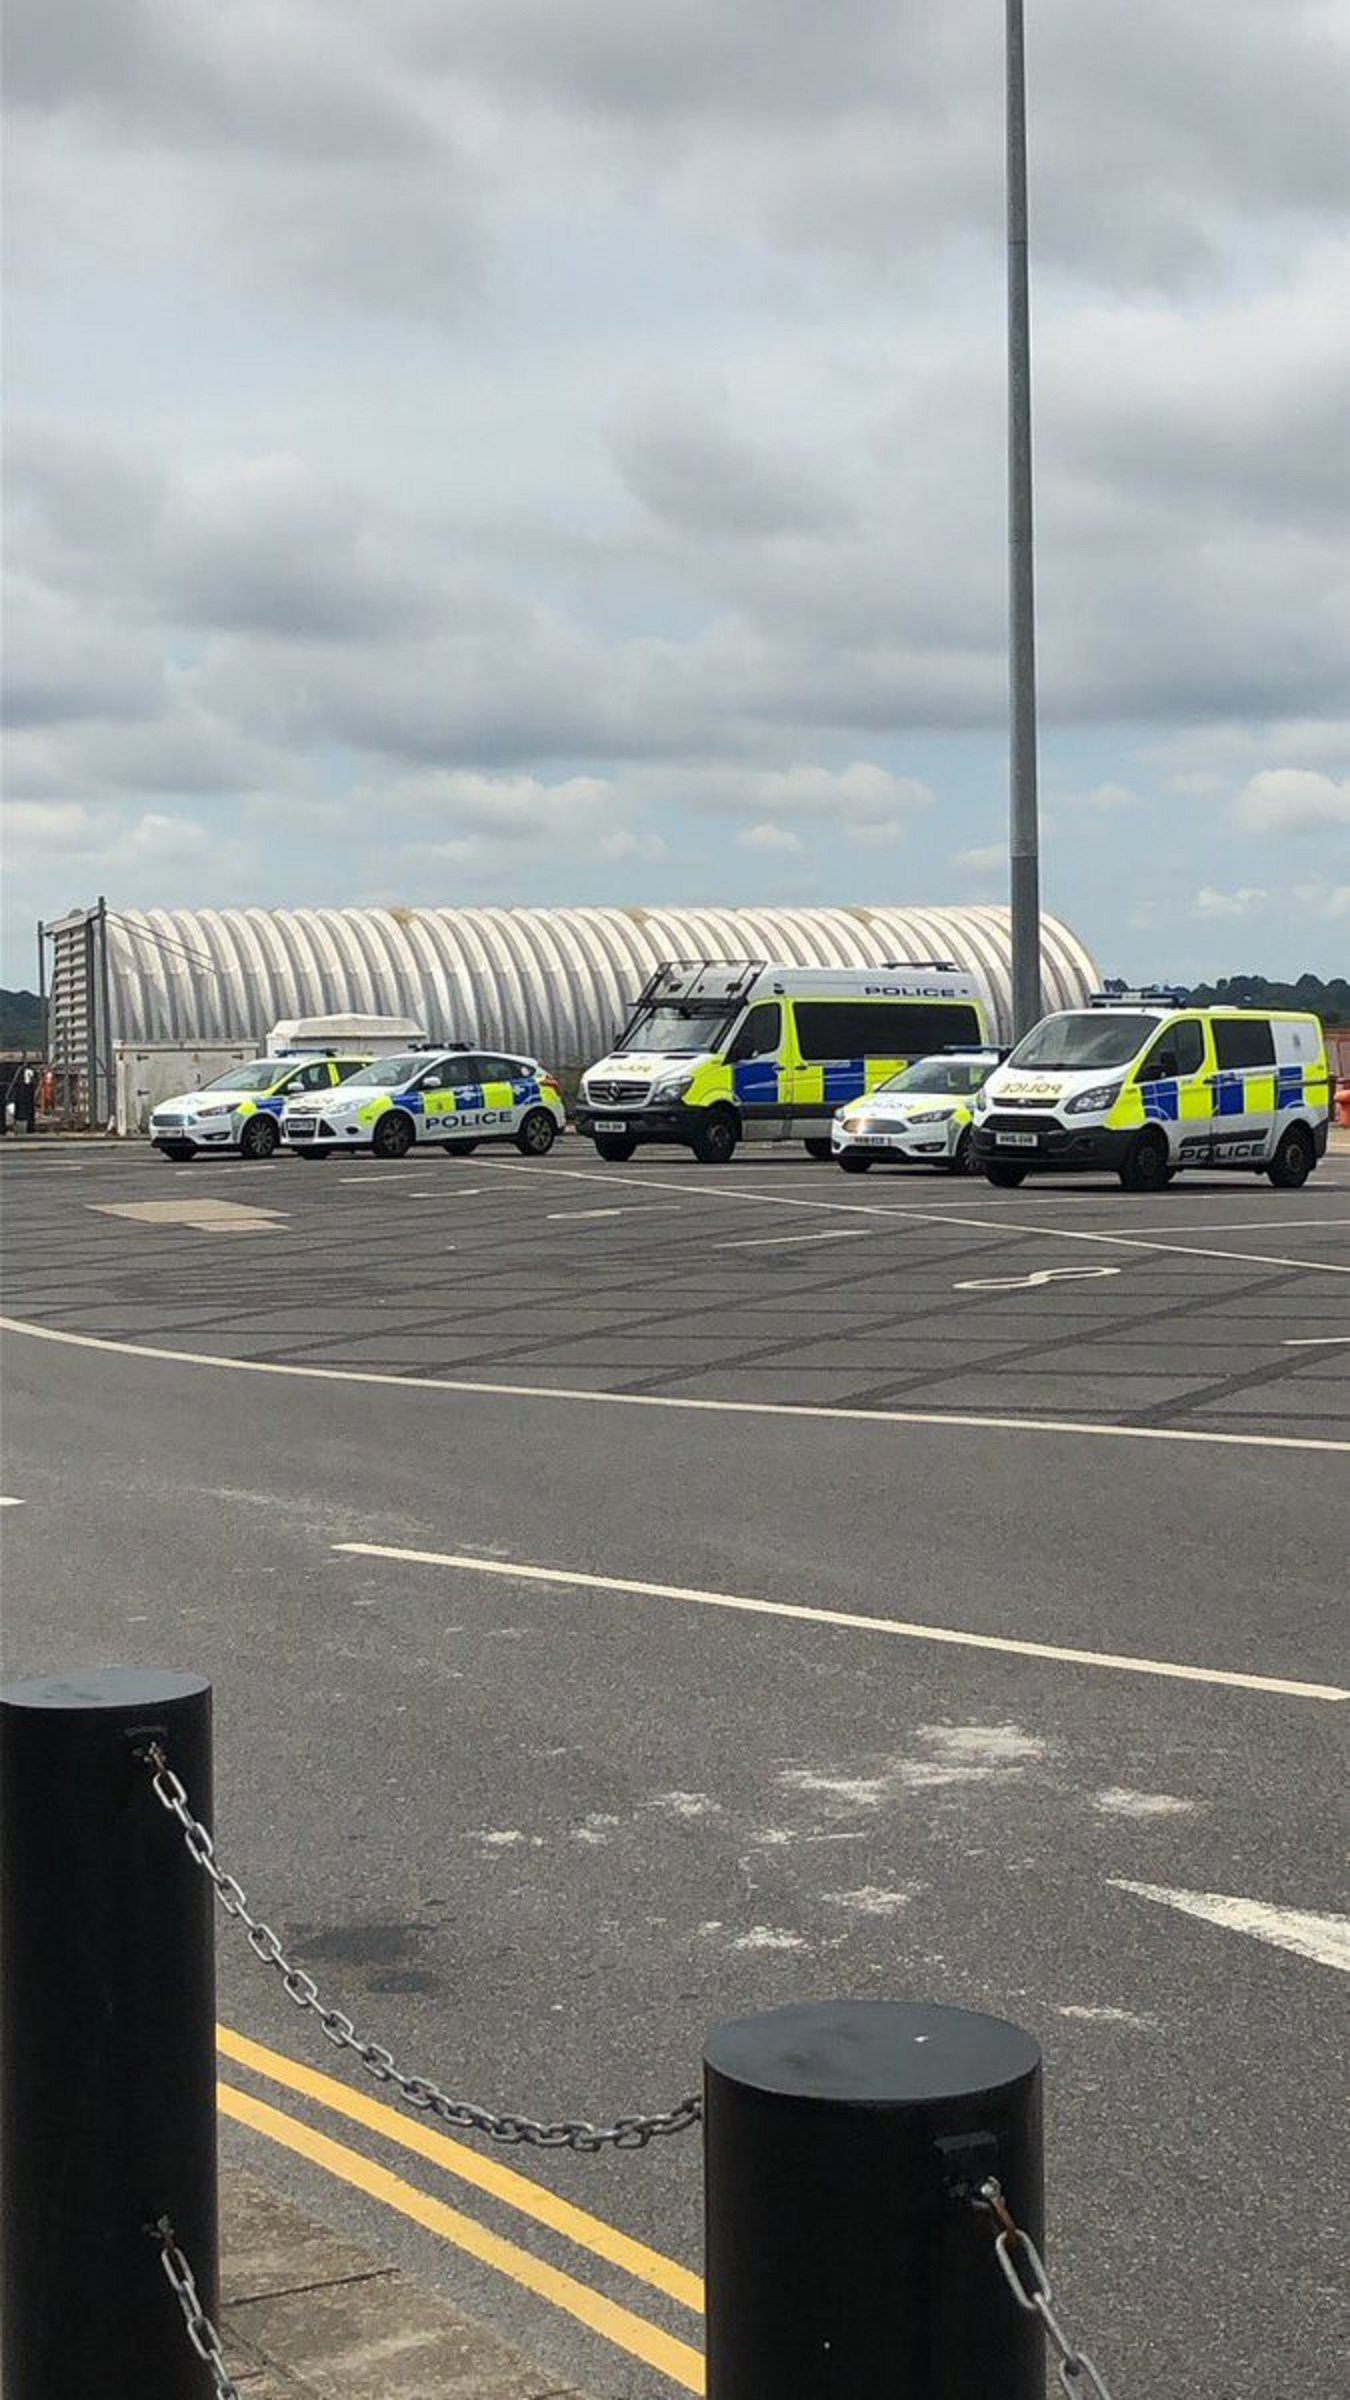 Police outside the terminal on Saturday morning (Lando: Twitter @LandoNorrisClub)